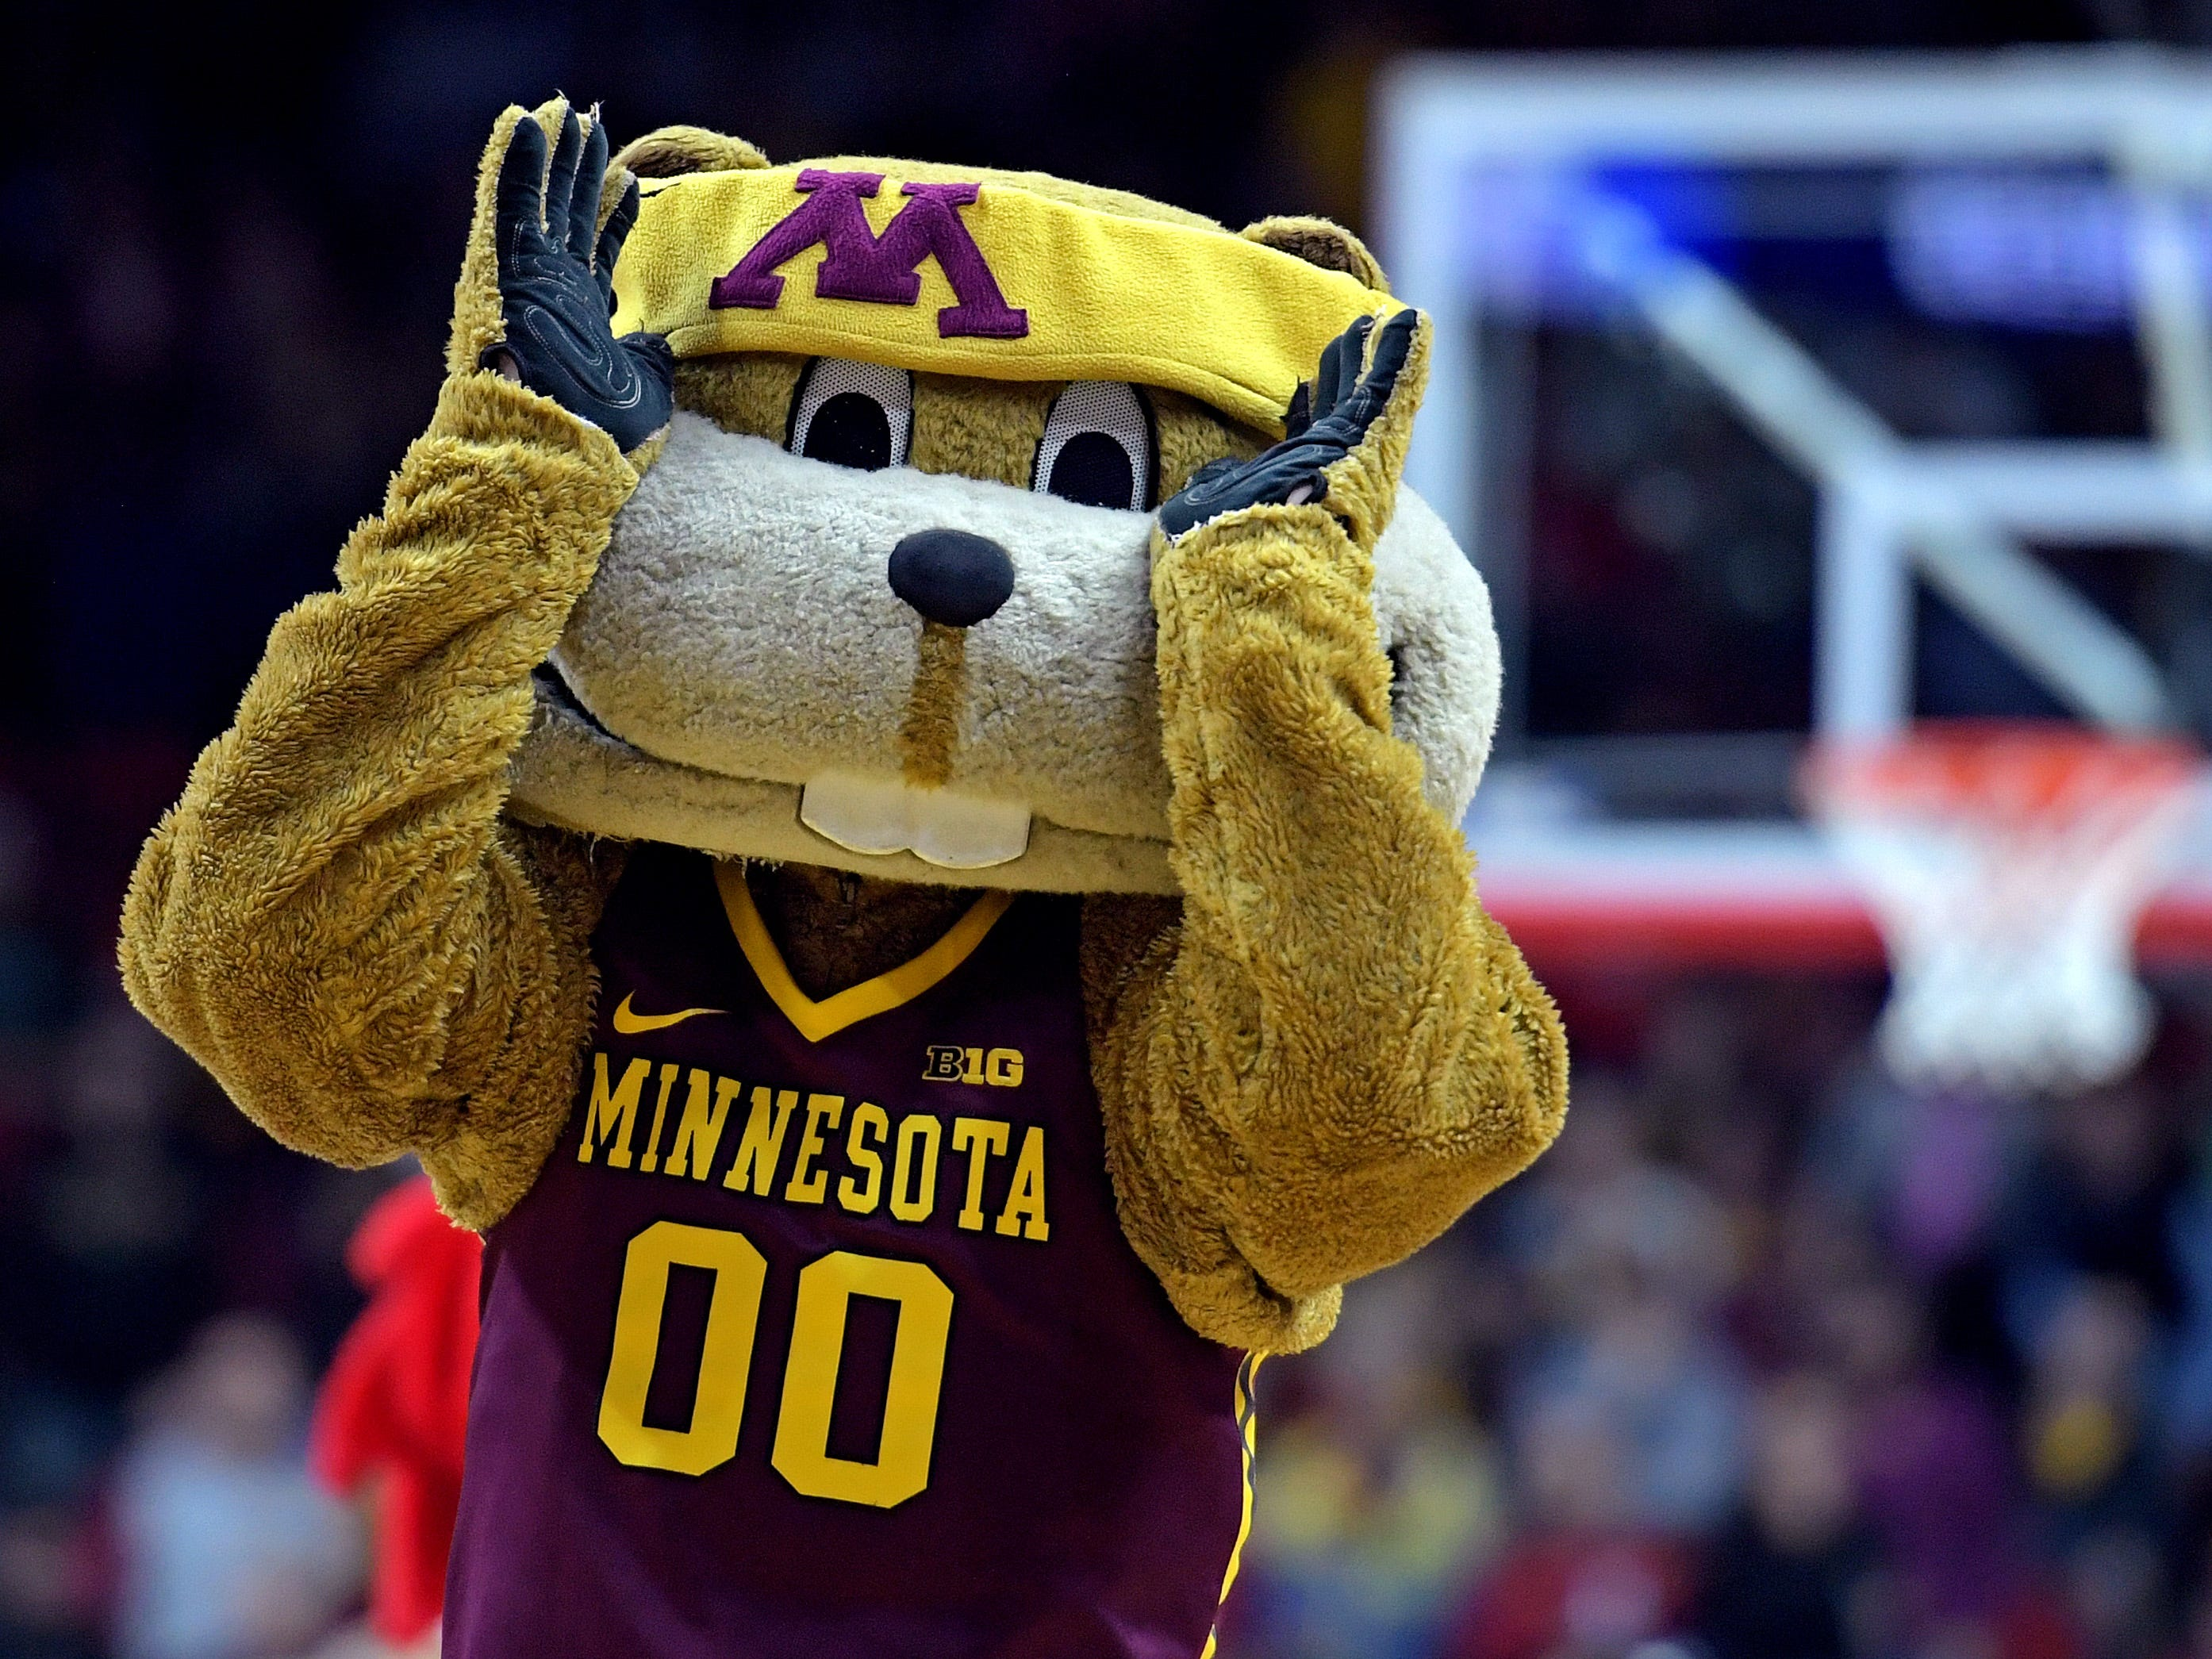 First round: The Minnesota Golden Gophers mascot on the court before the game against the Louisville Cardinals.